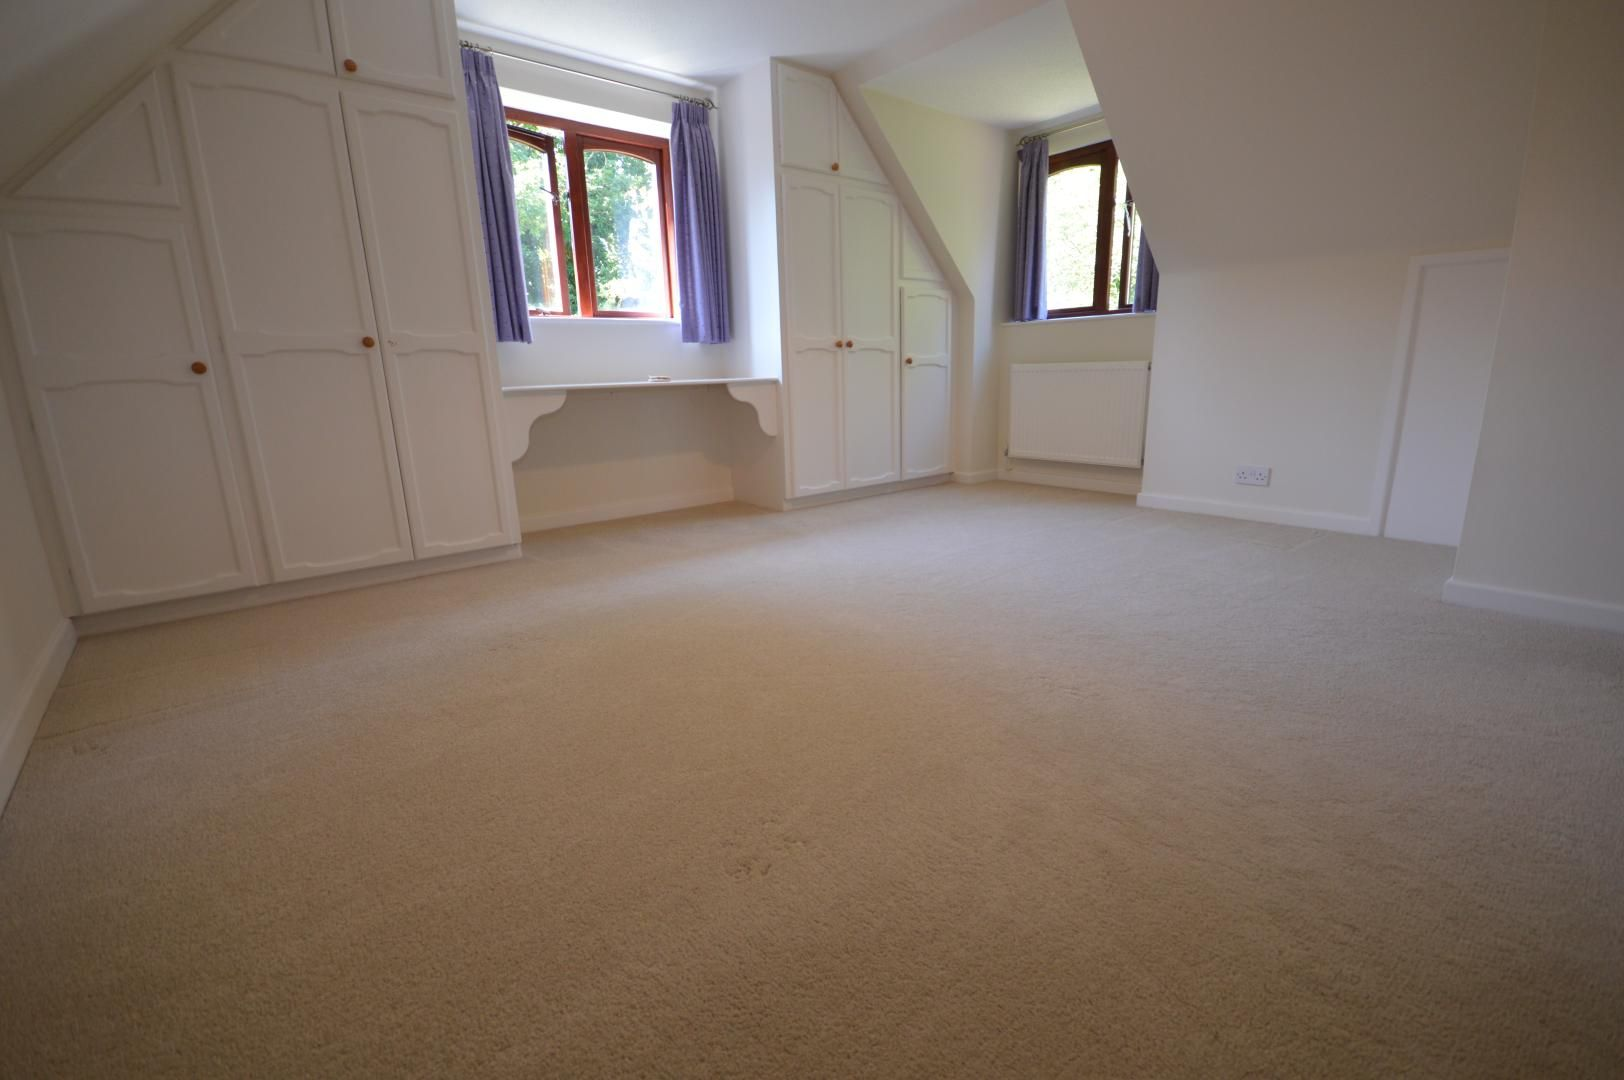 3 bed house to rent 12